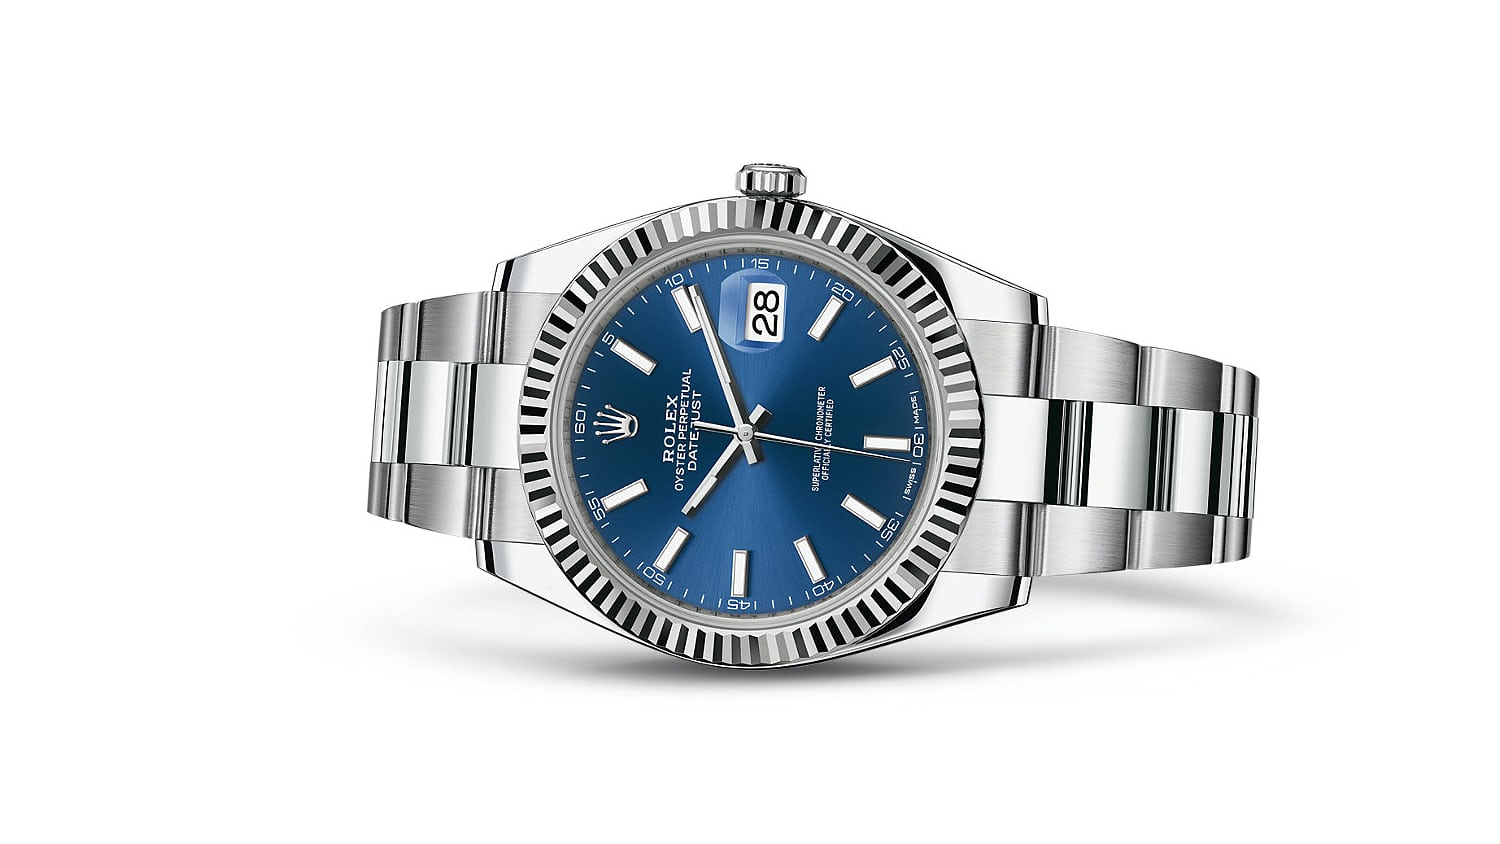 359929e3cc2 Introducing: The Rolex Datejust 41, Now In Stainless Steel With The  Reference 126334 - HODINKEE